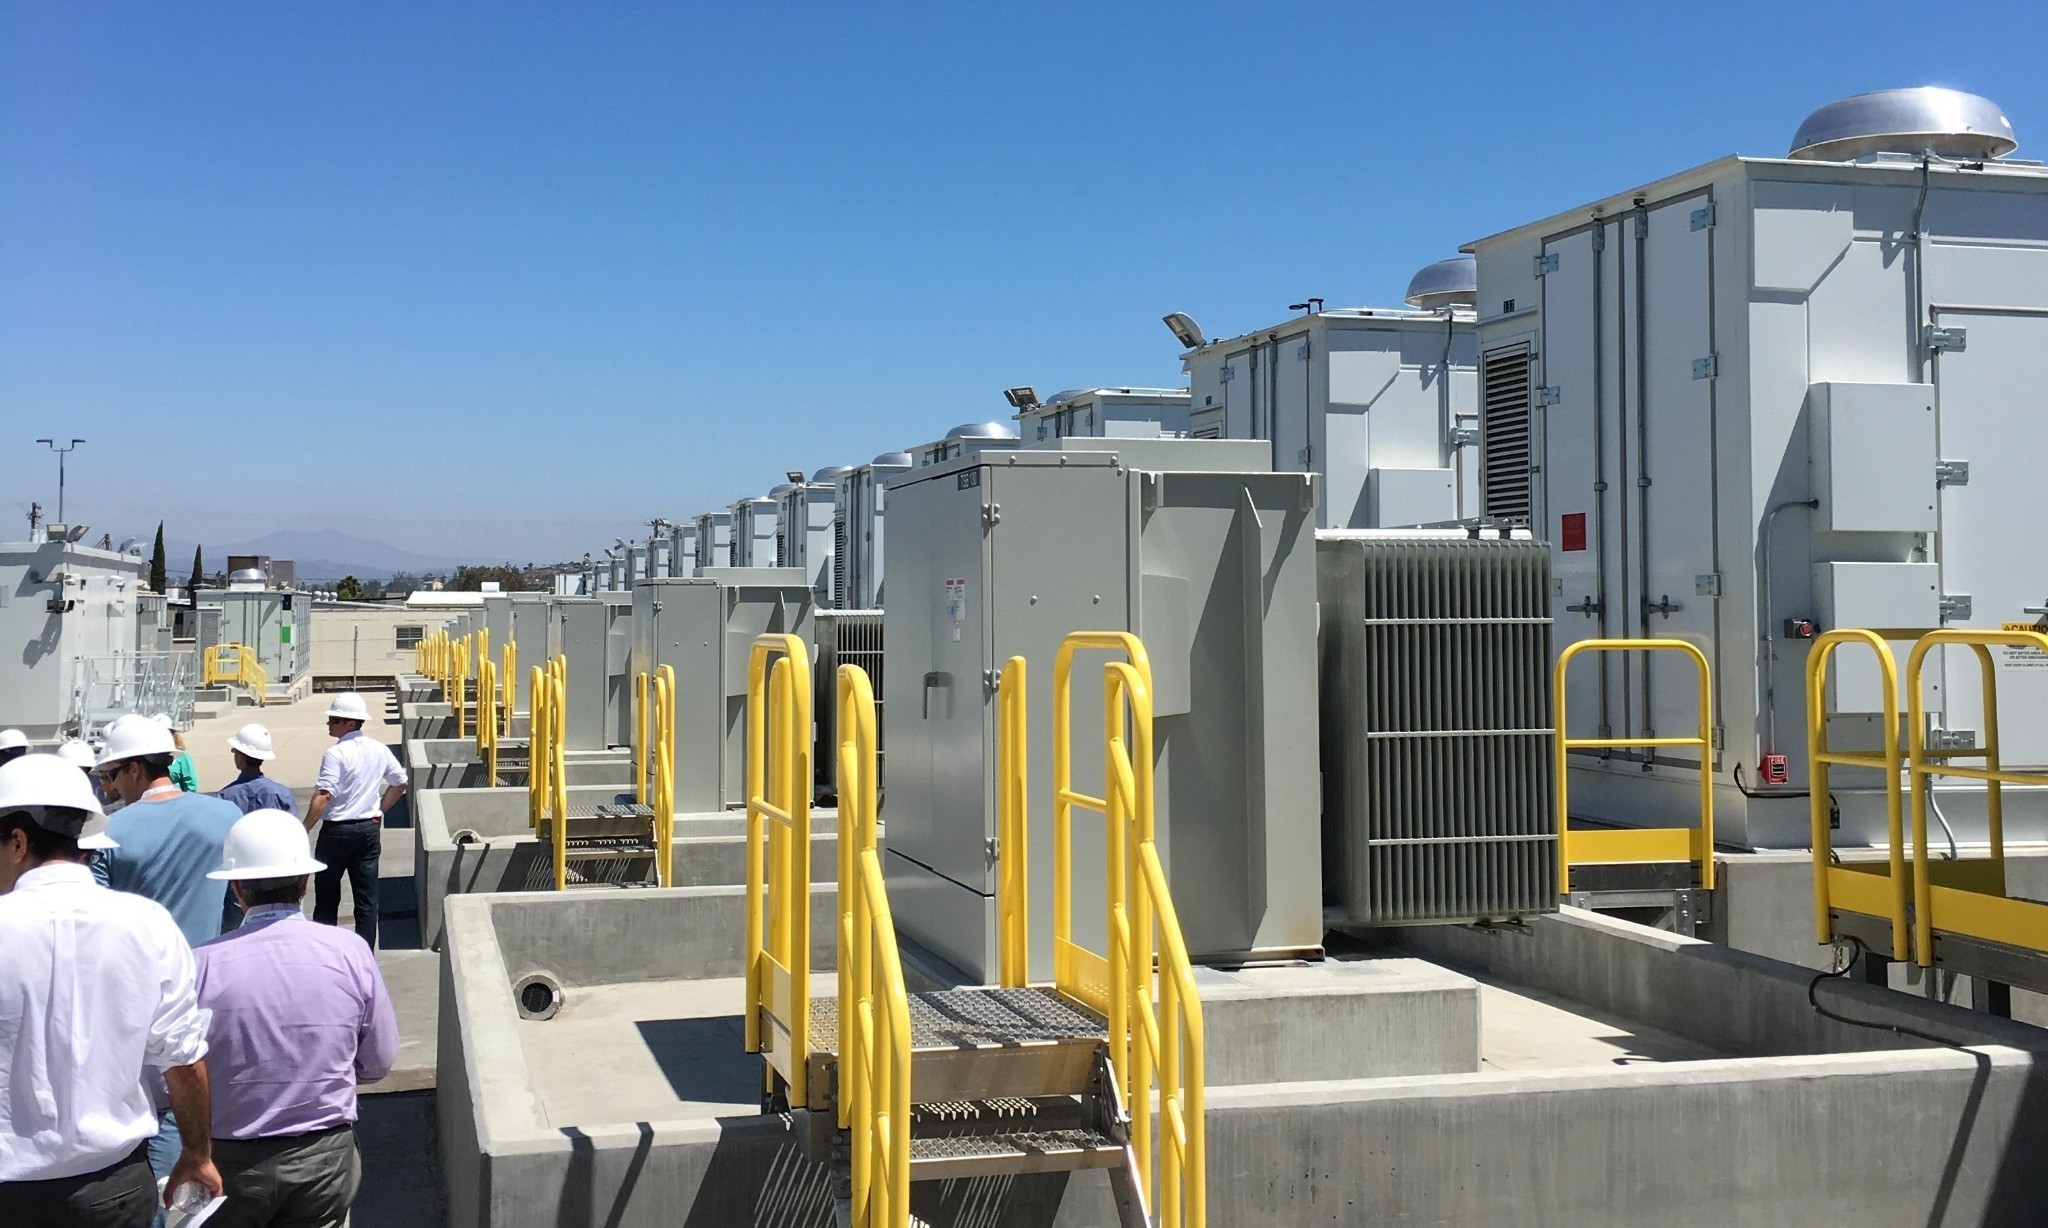 California's big battery experiment: a turning point for energy storage?